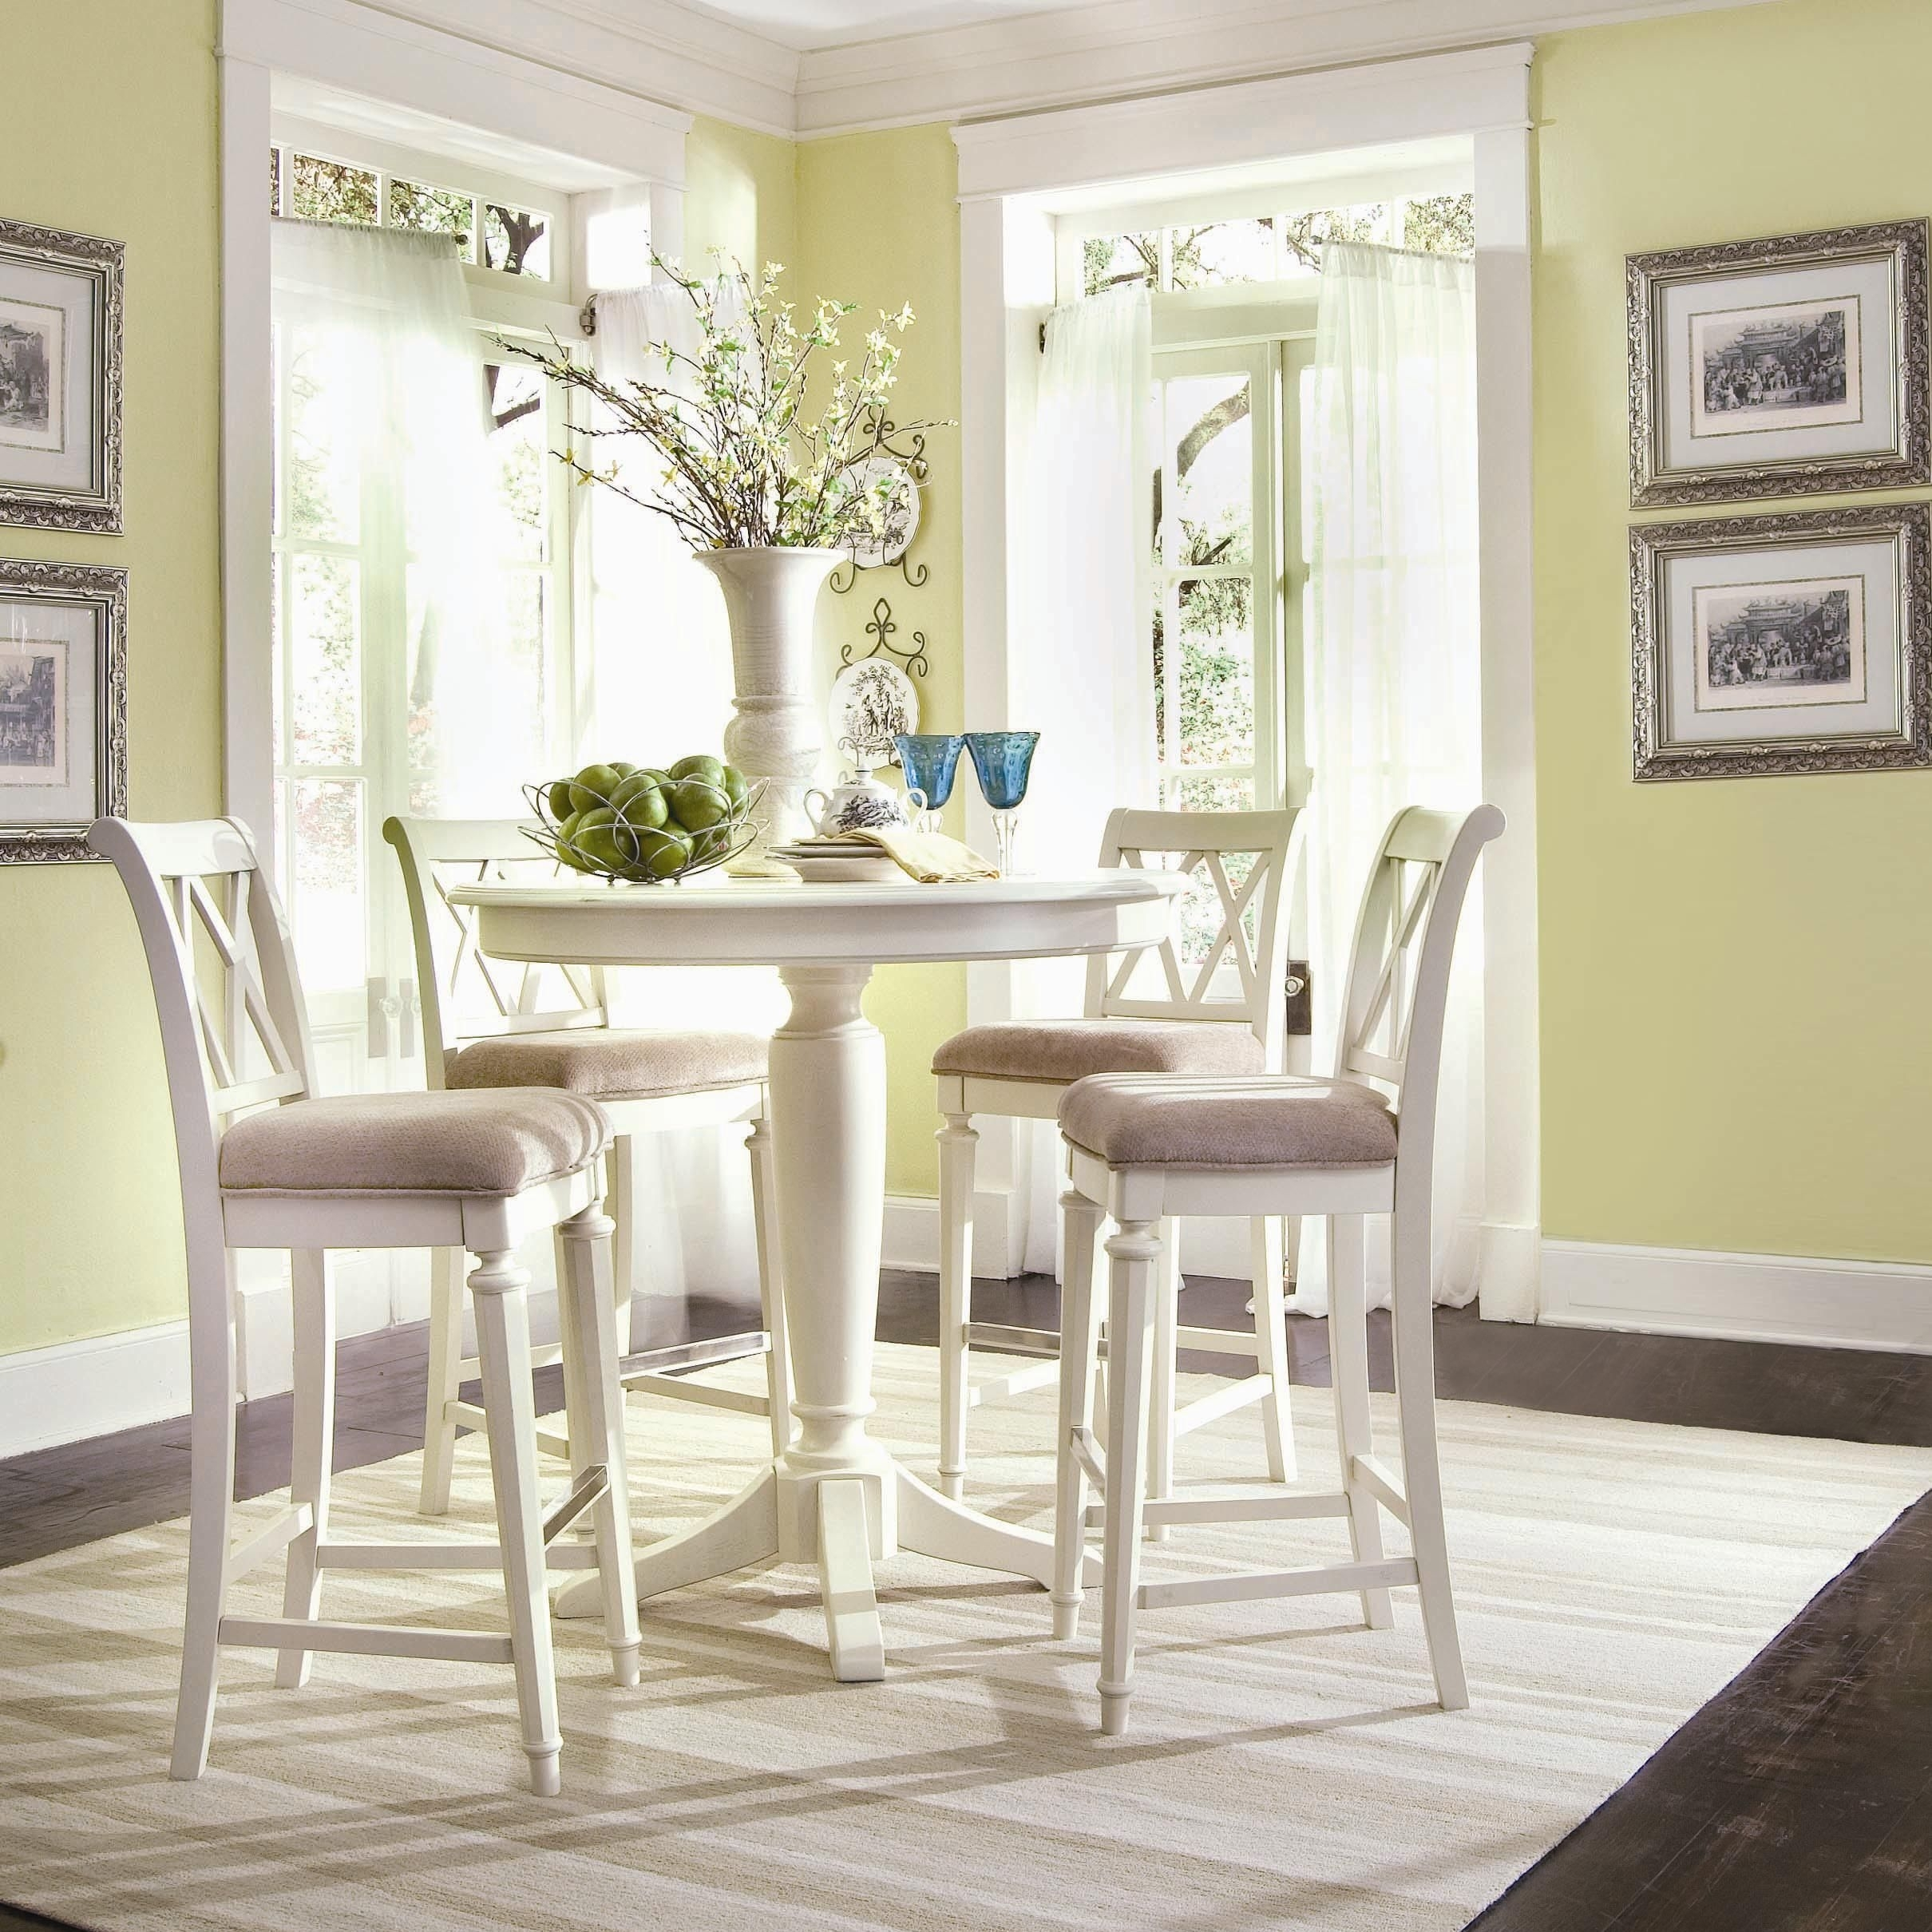 Create A Cottage Look With A Small Gathering Table! #cottage #life With Regard To Most Up To Date Palazzo 7 Piece Dining Sets With Pearson White Side Chairs (Image 6 of 20)